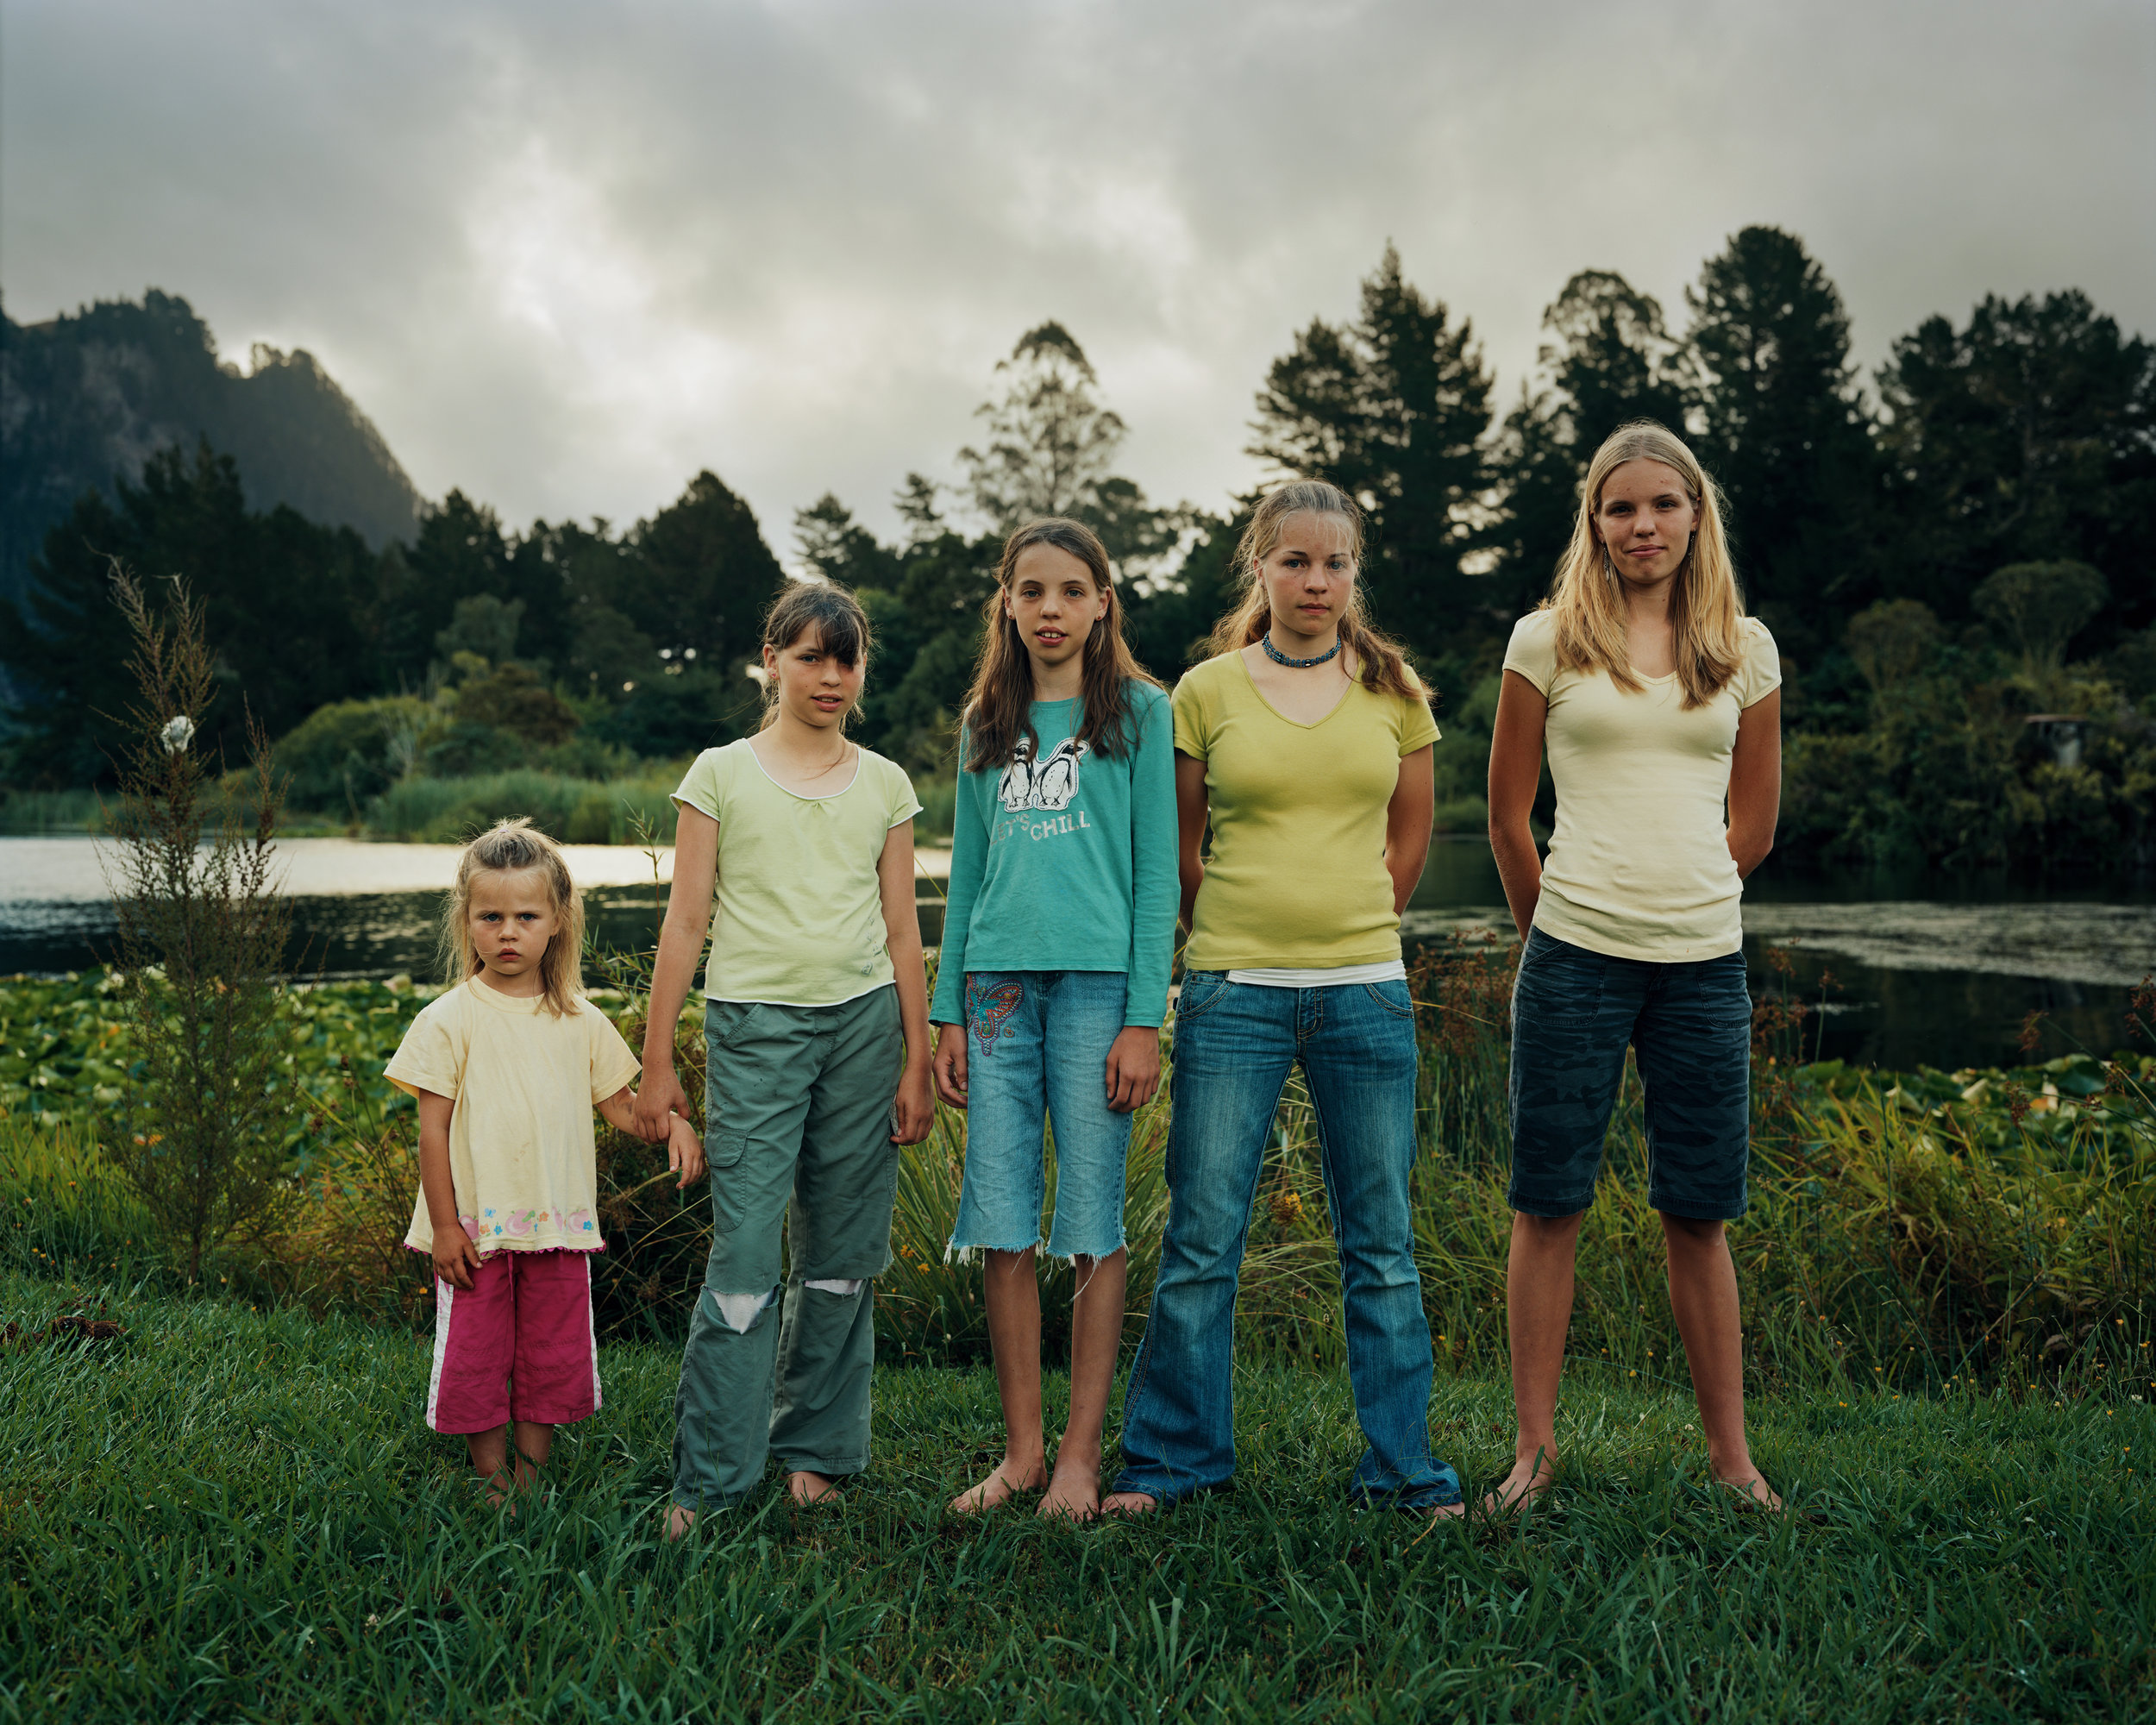 Kate, Charlotte, Emily, Victoria and Sarah Drinnan, Lake Whakamaru, Waikato, 2008. From the book Mercy Mercer 2009.    J.M:  Is there a project you're working on at the moment you can talk about?    D.H:  I'm working on a series about people's homes. They are mostly very humble abodes but the owners have taken particular care of something small you might miss if you didn't take a closer look. It's in the details. I also like what appears at first to be repetition.